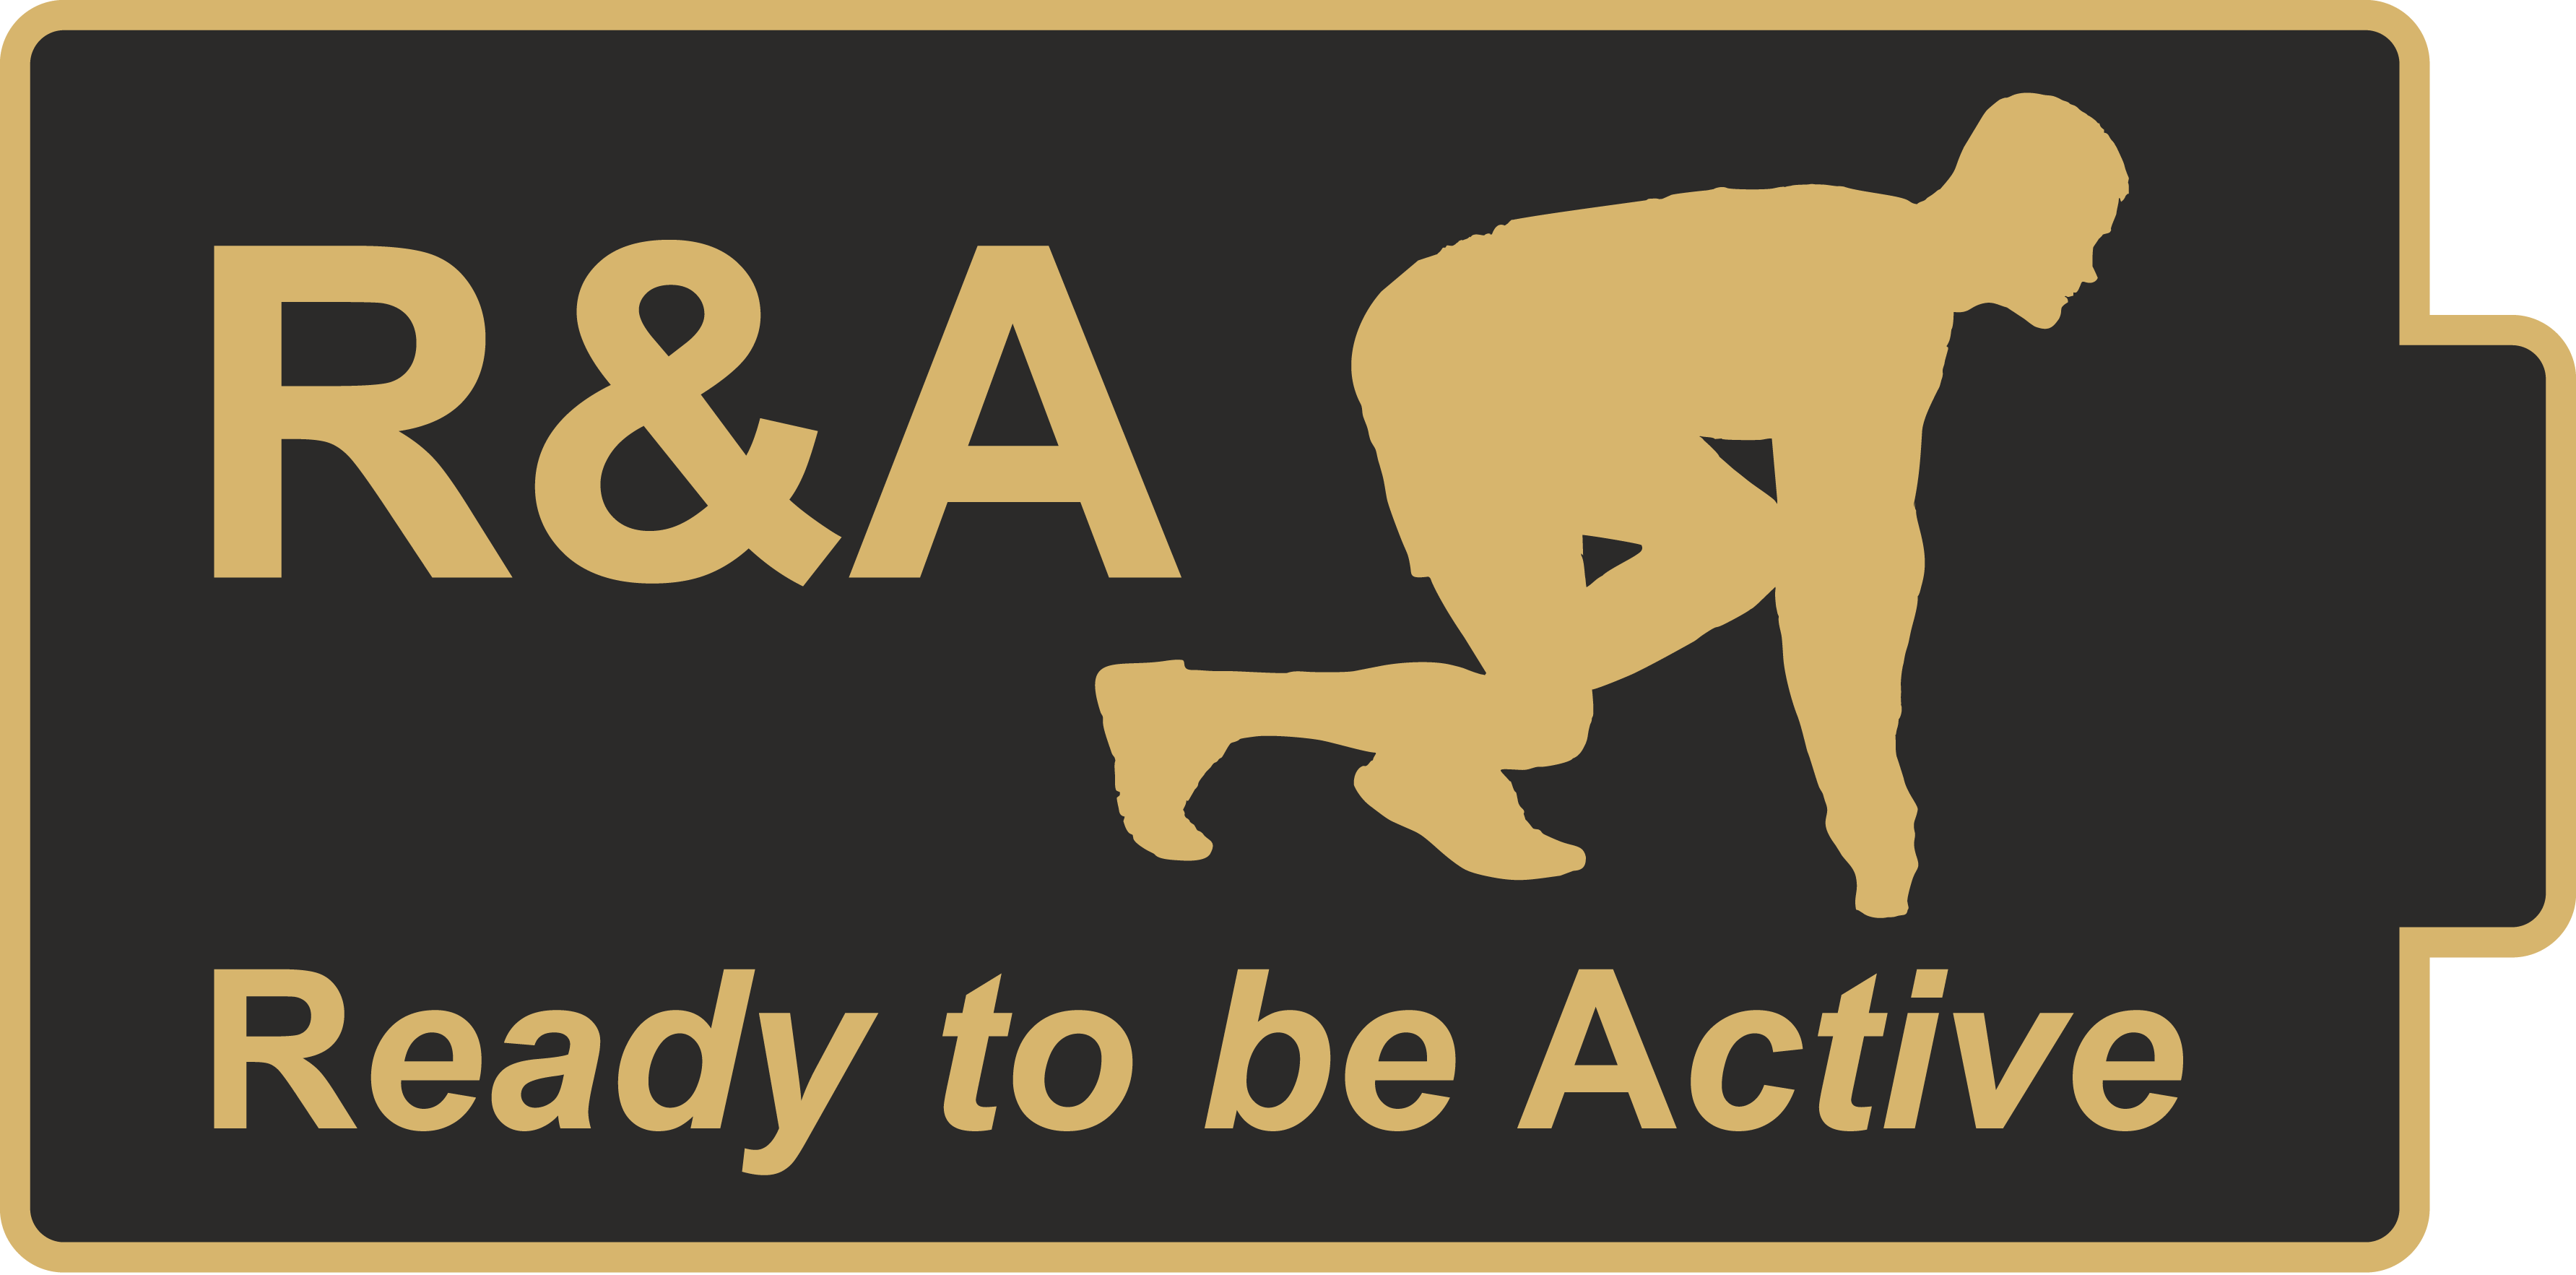 Ready to be Active - R&A